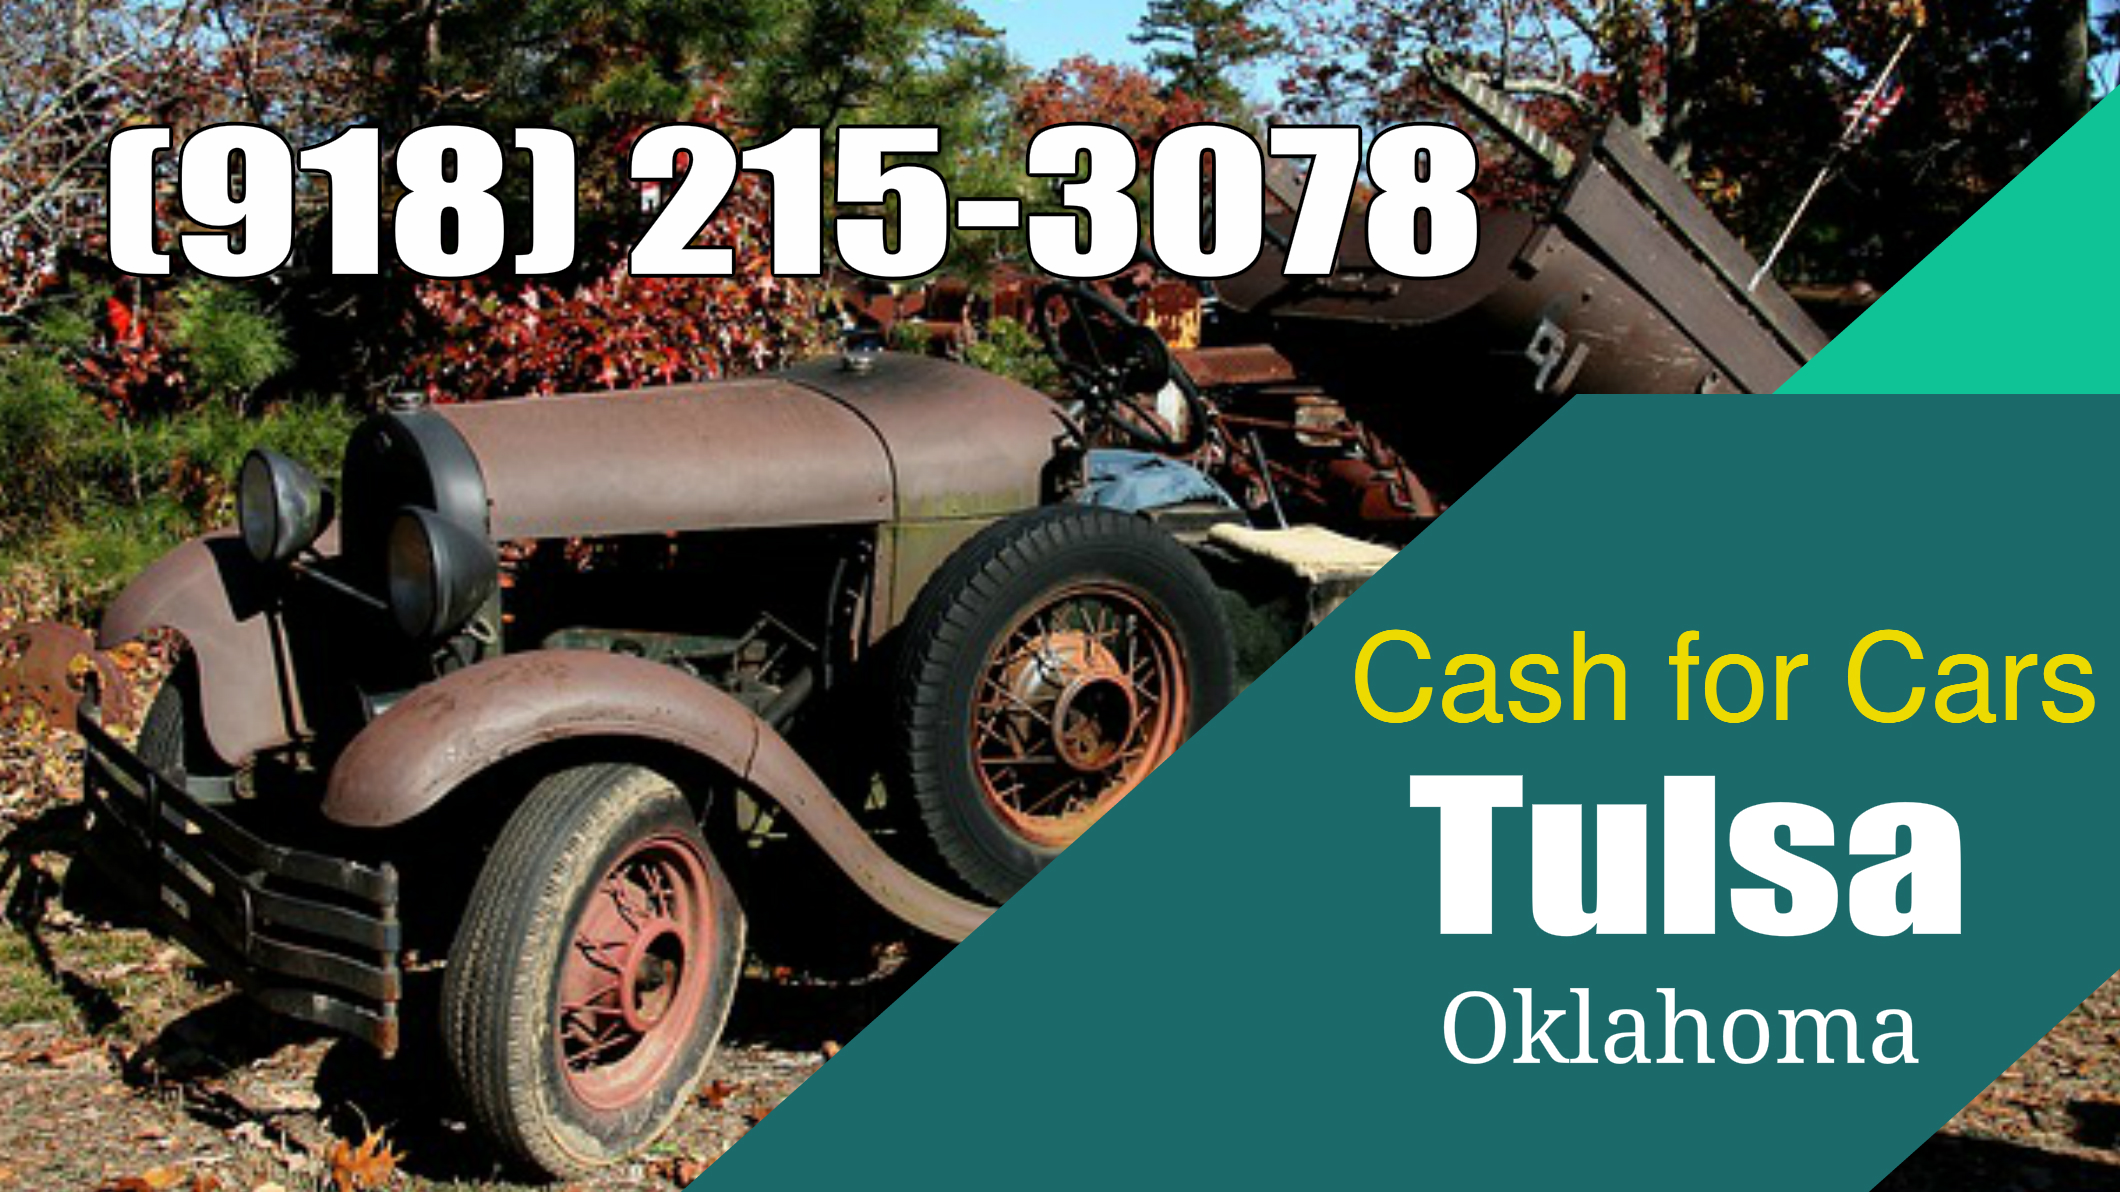 Cash For Cars Tulsa OK (918) 215-3078